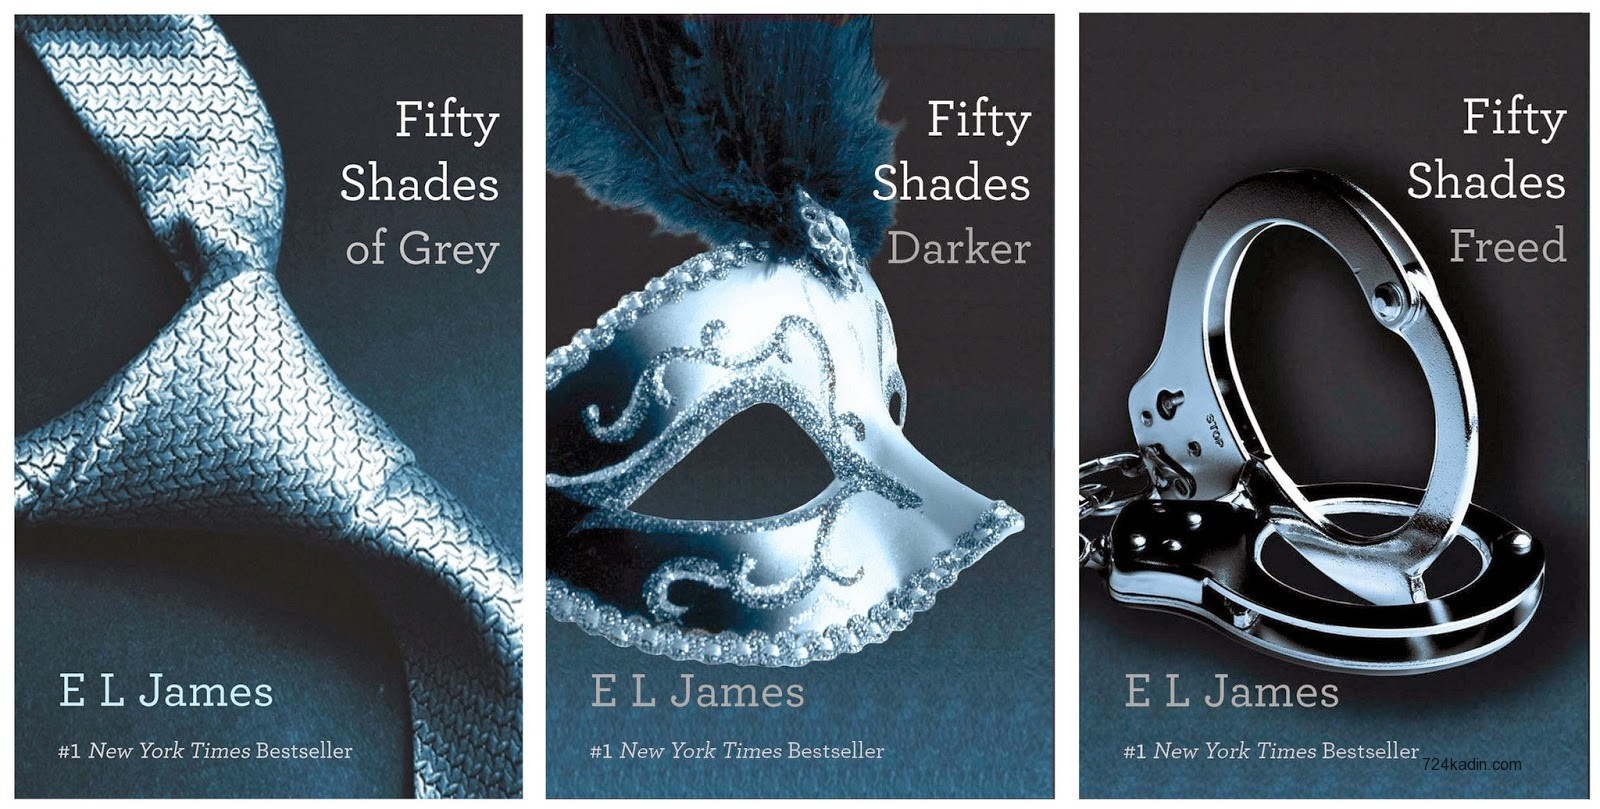 Fifty-Shades-Covers